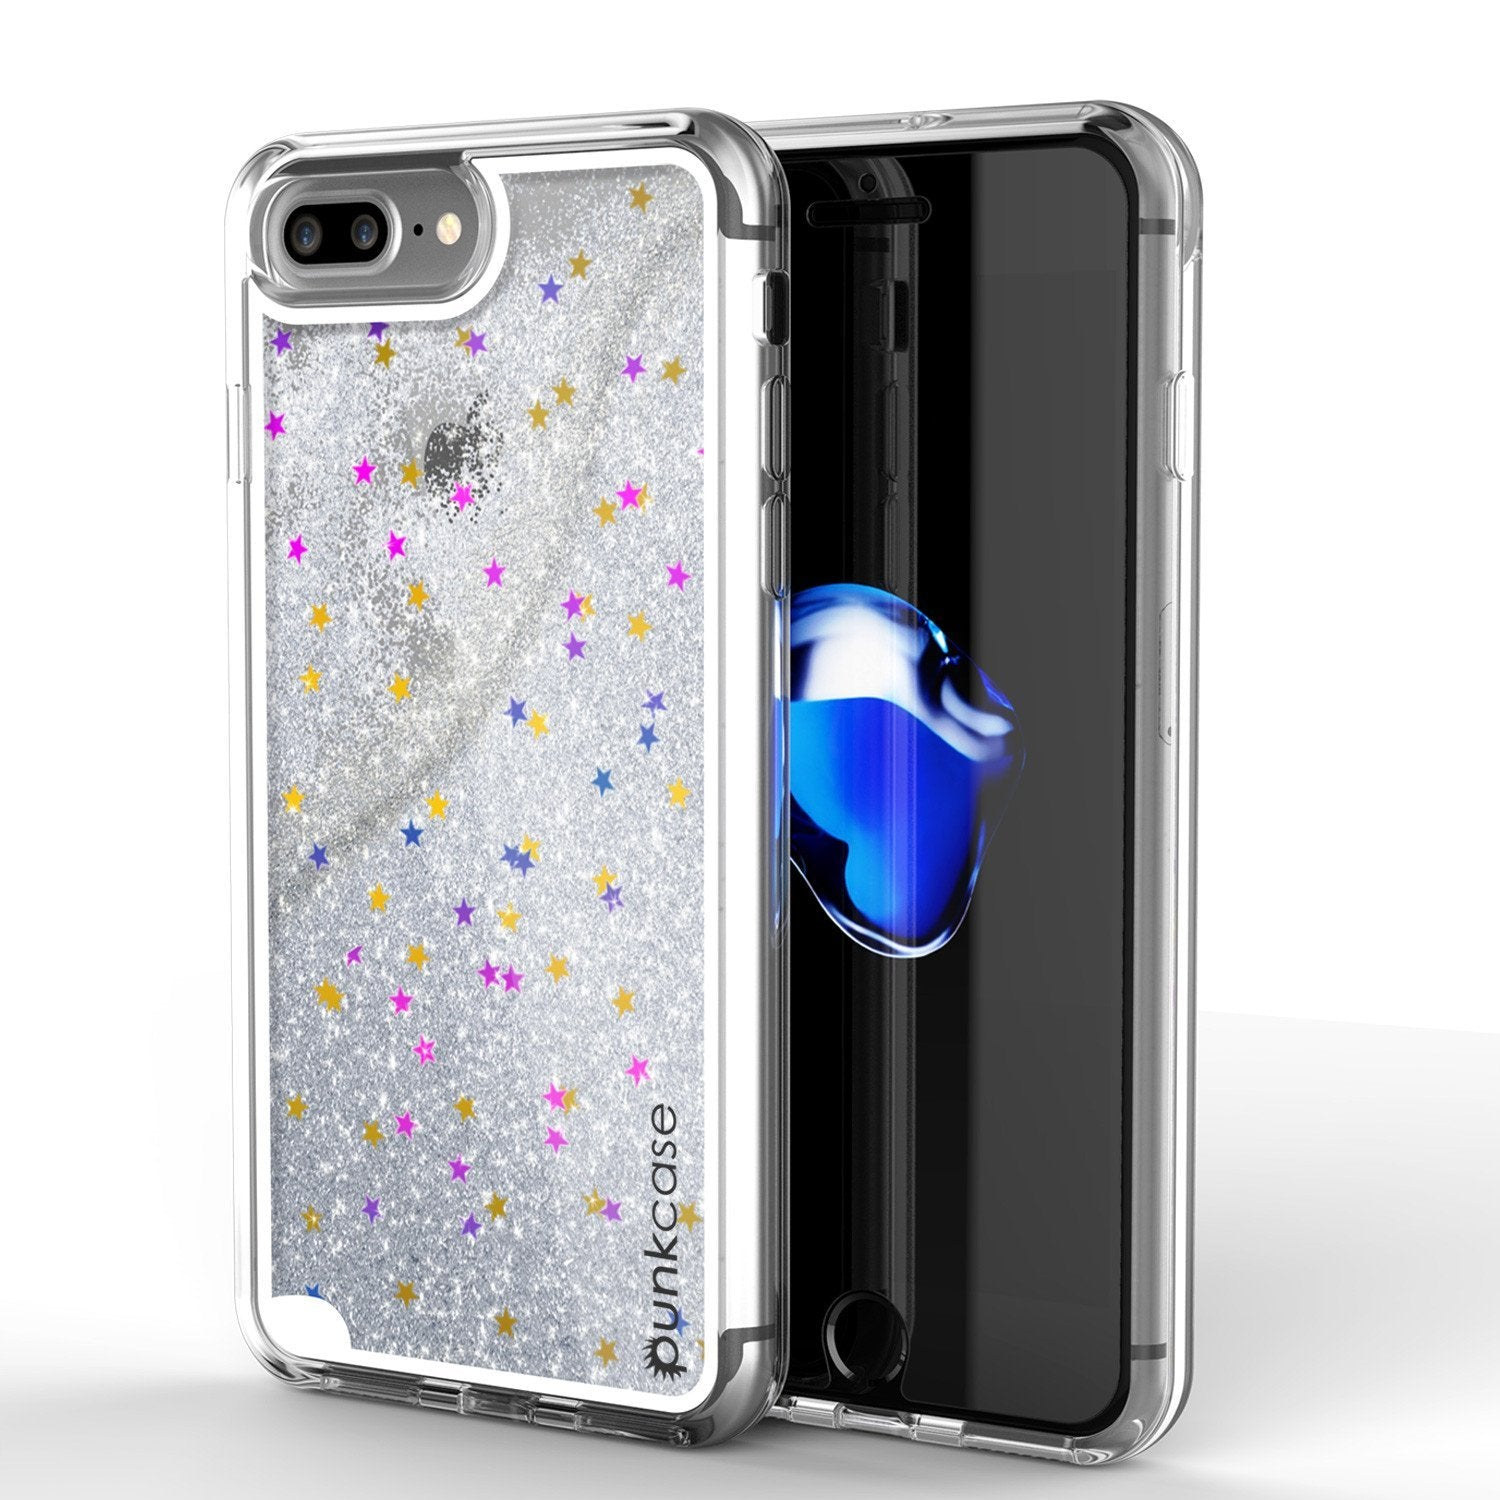 iPhone 8+ Plus Case, PunkCase LIQUID Silver Series, Protective Dual Layer Floating Glitter Cover